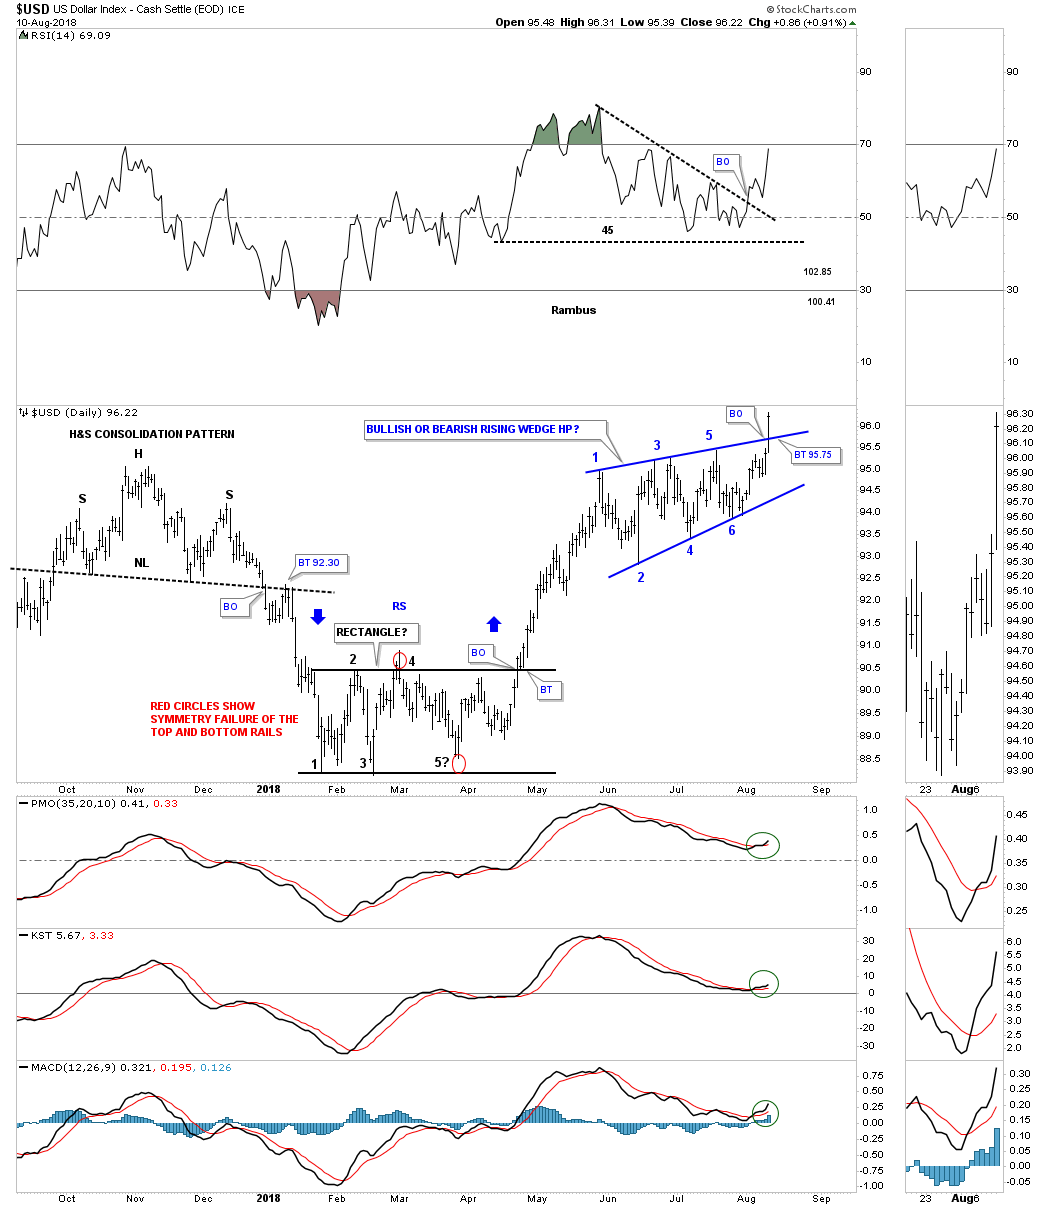 US Dollar Index Daily Chart